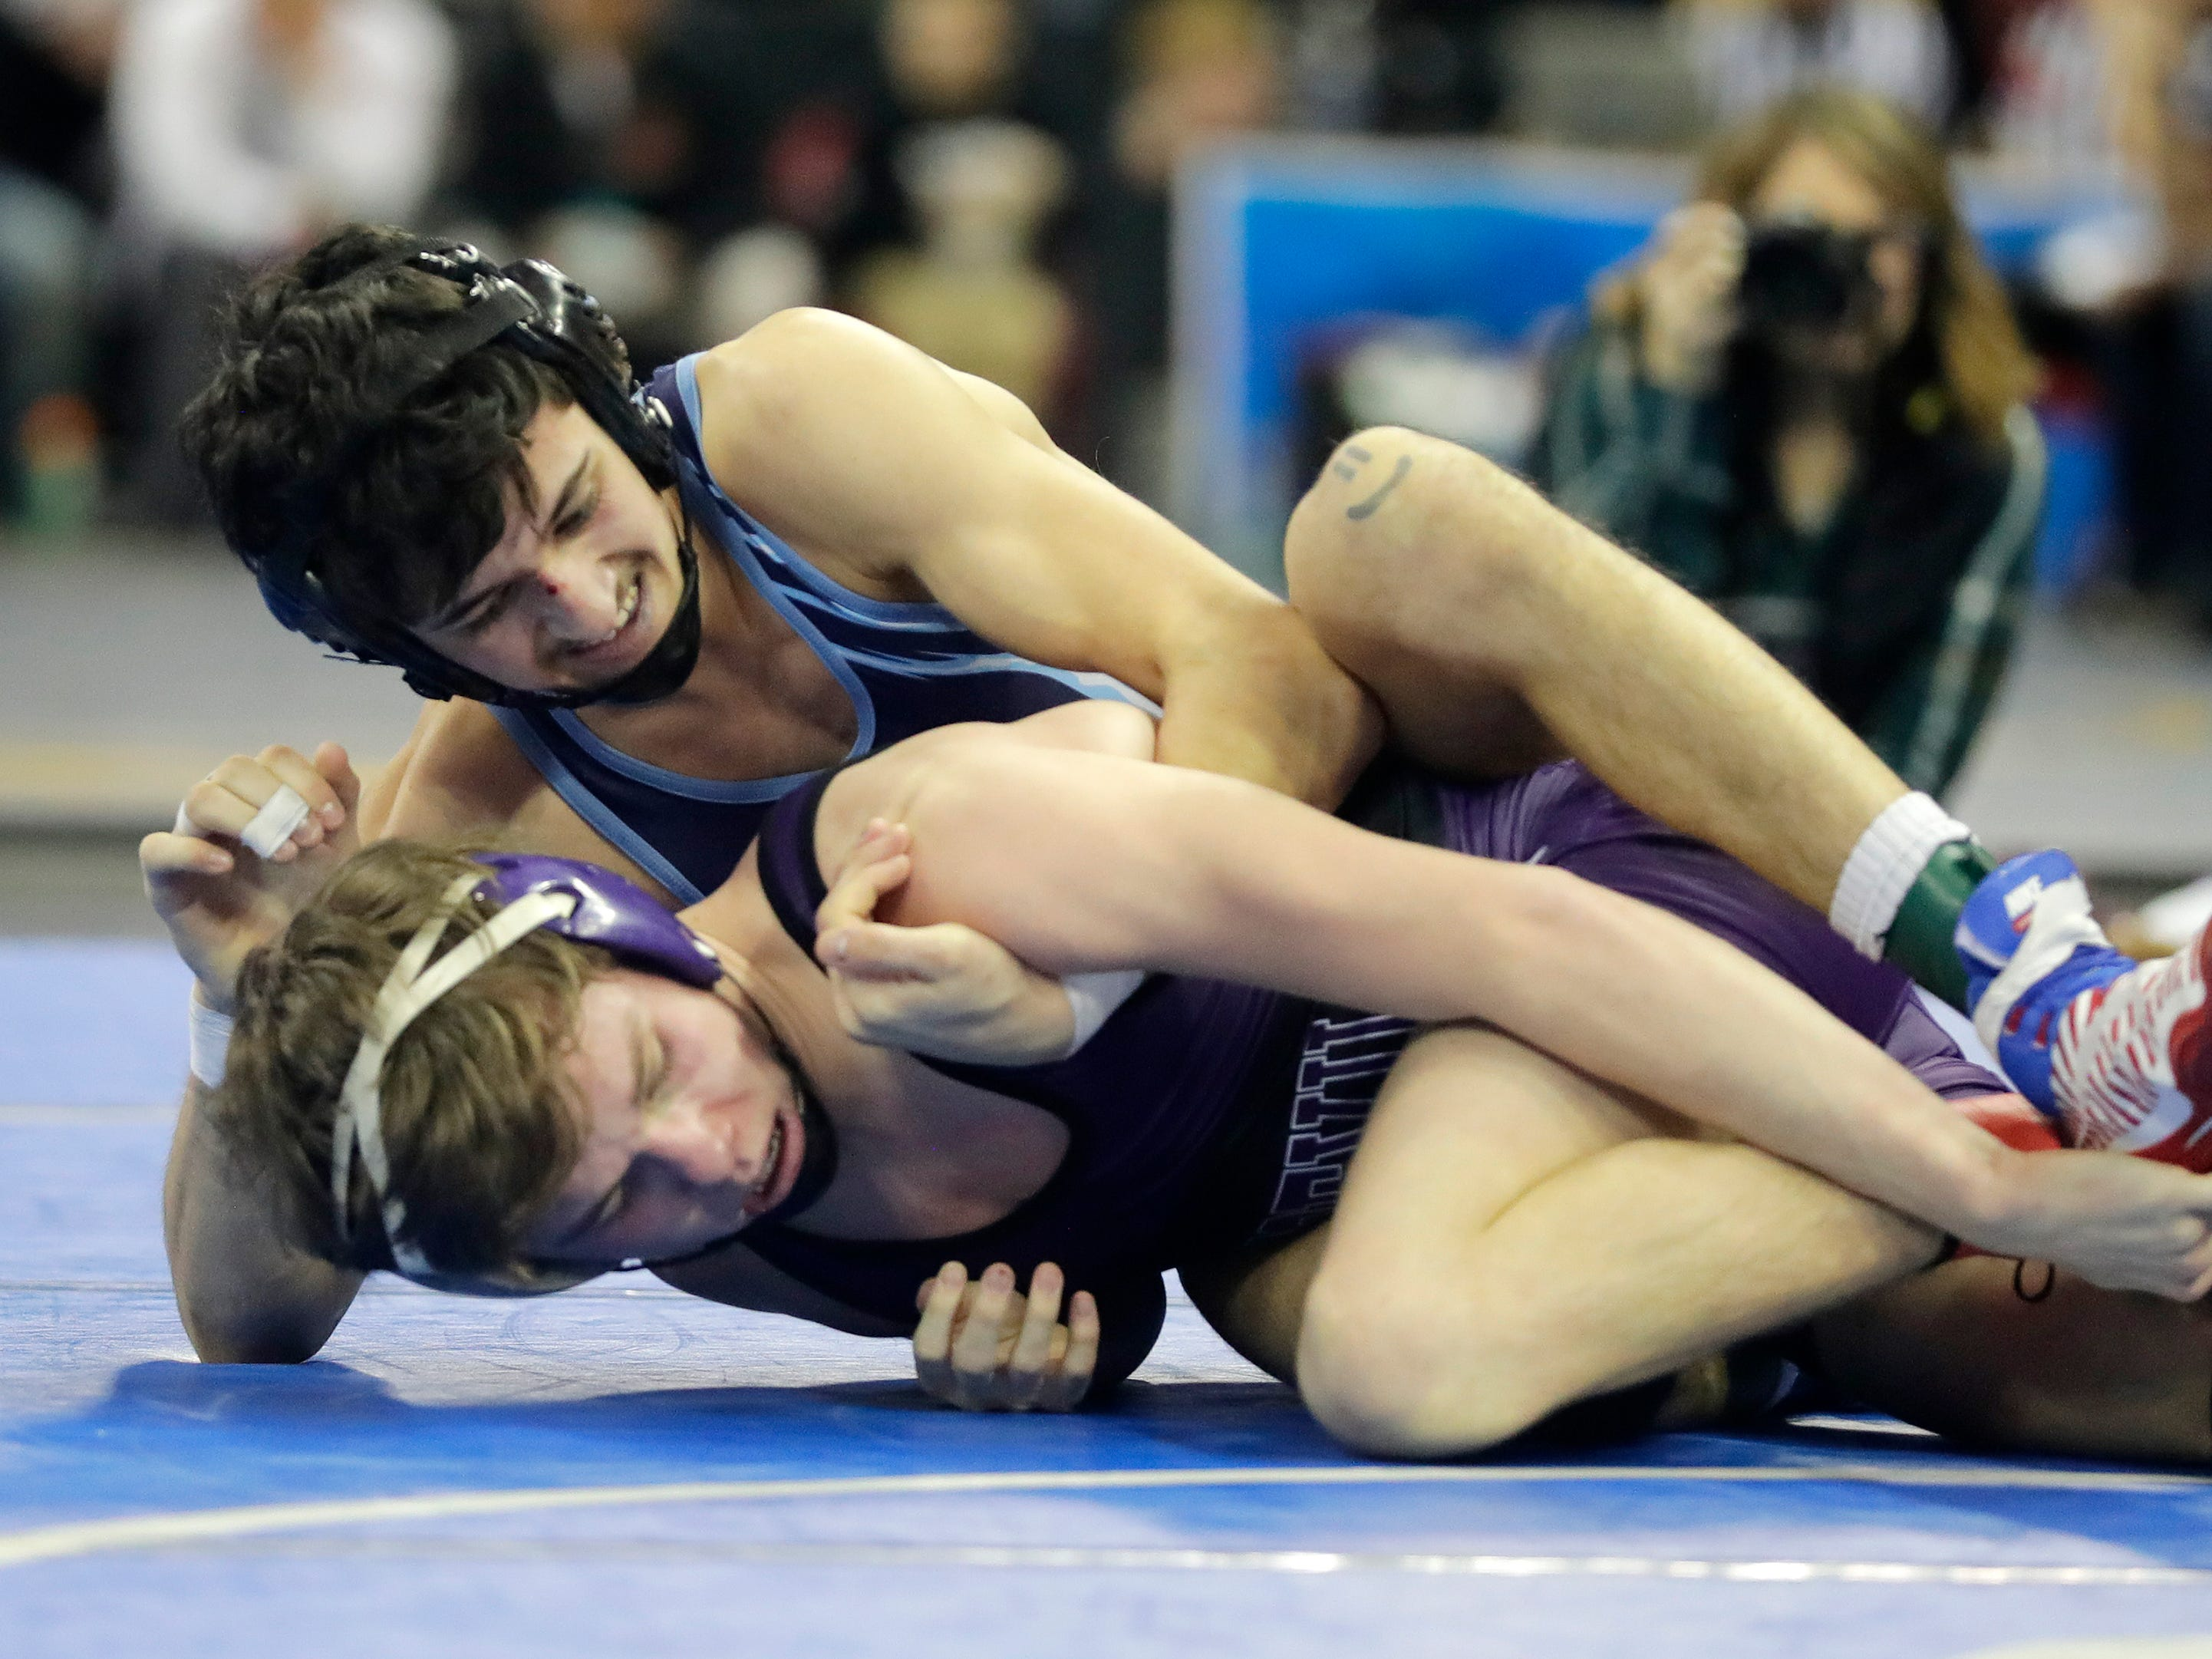 Florence/Niagara's Tristen Mascarette wrestles Boyceville's Nate Stuart in a Division 3 120-pound preliminary match at the WIAA state individual wrestling tournament at the Kohl Center on Thursday, February 21, 2019 in Madison, Wis.